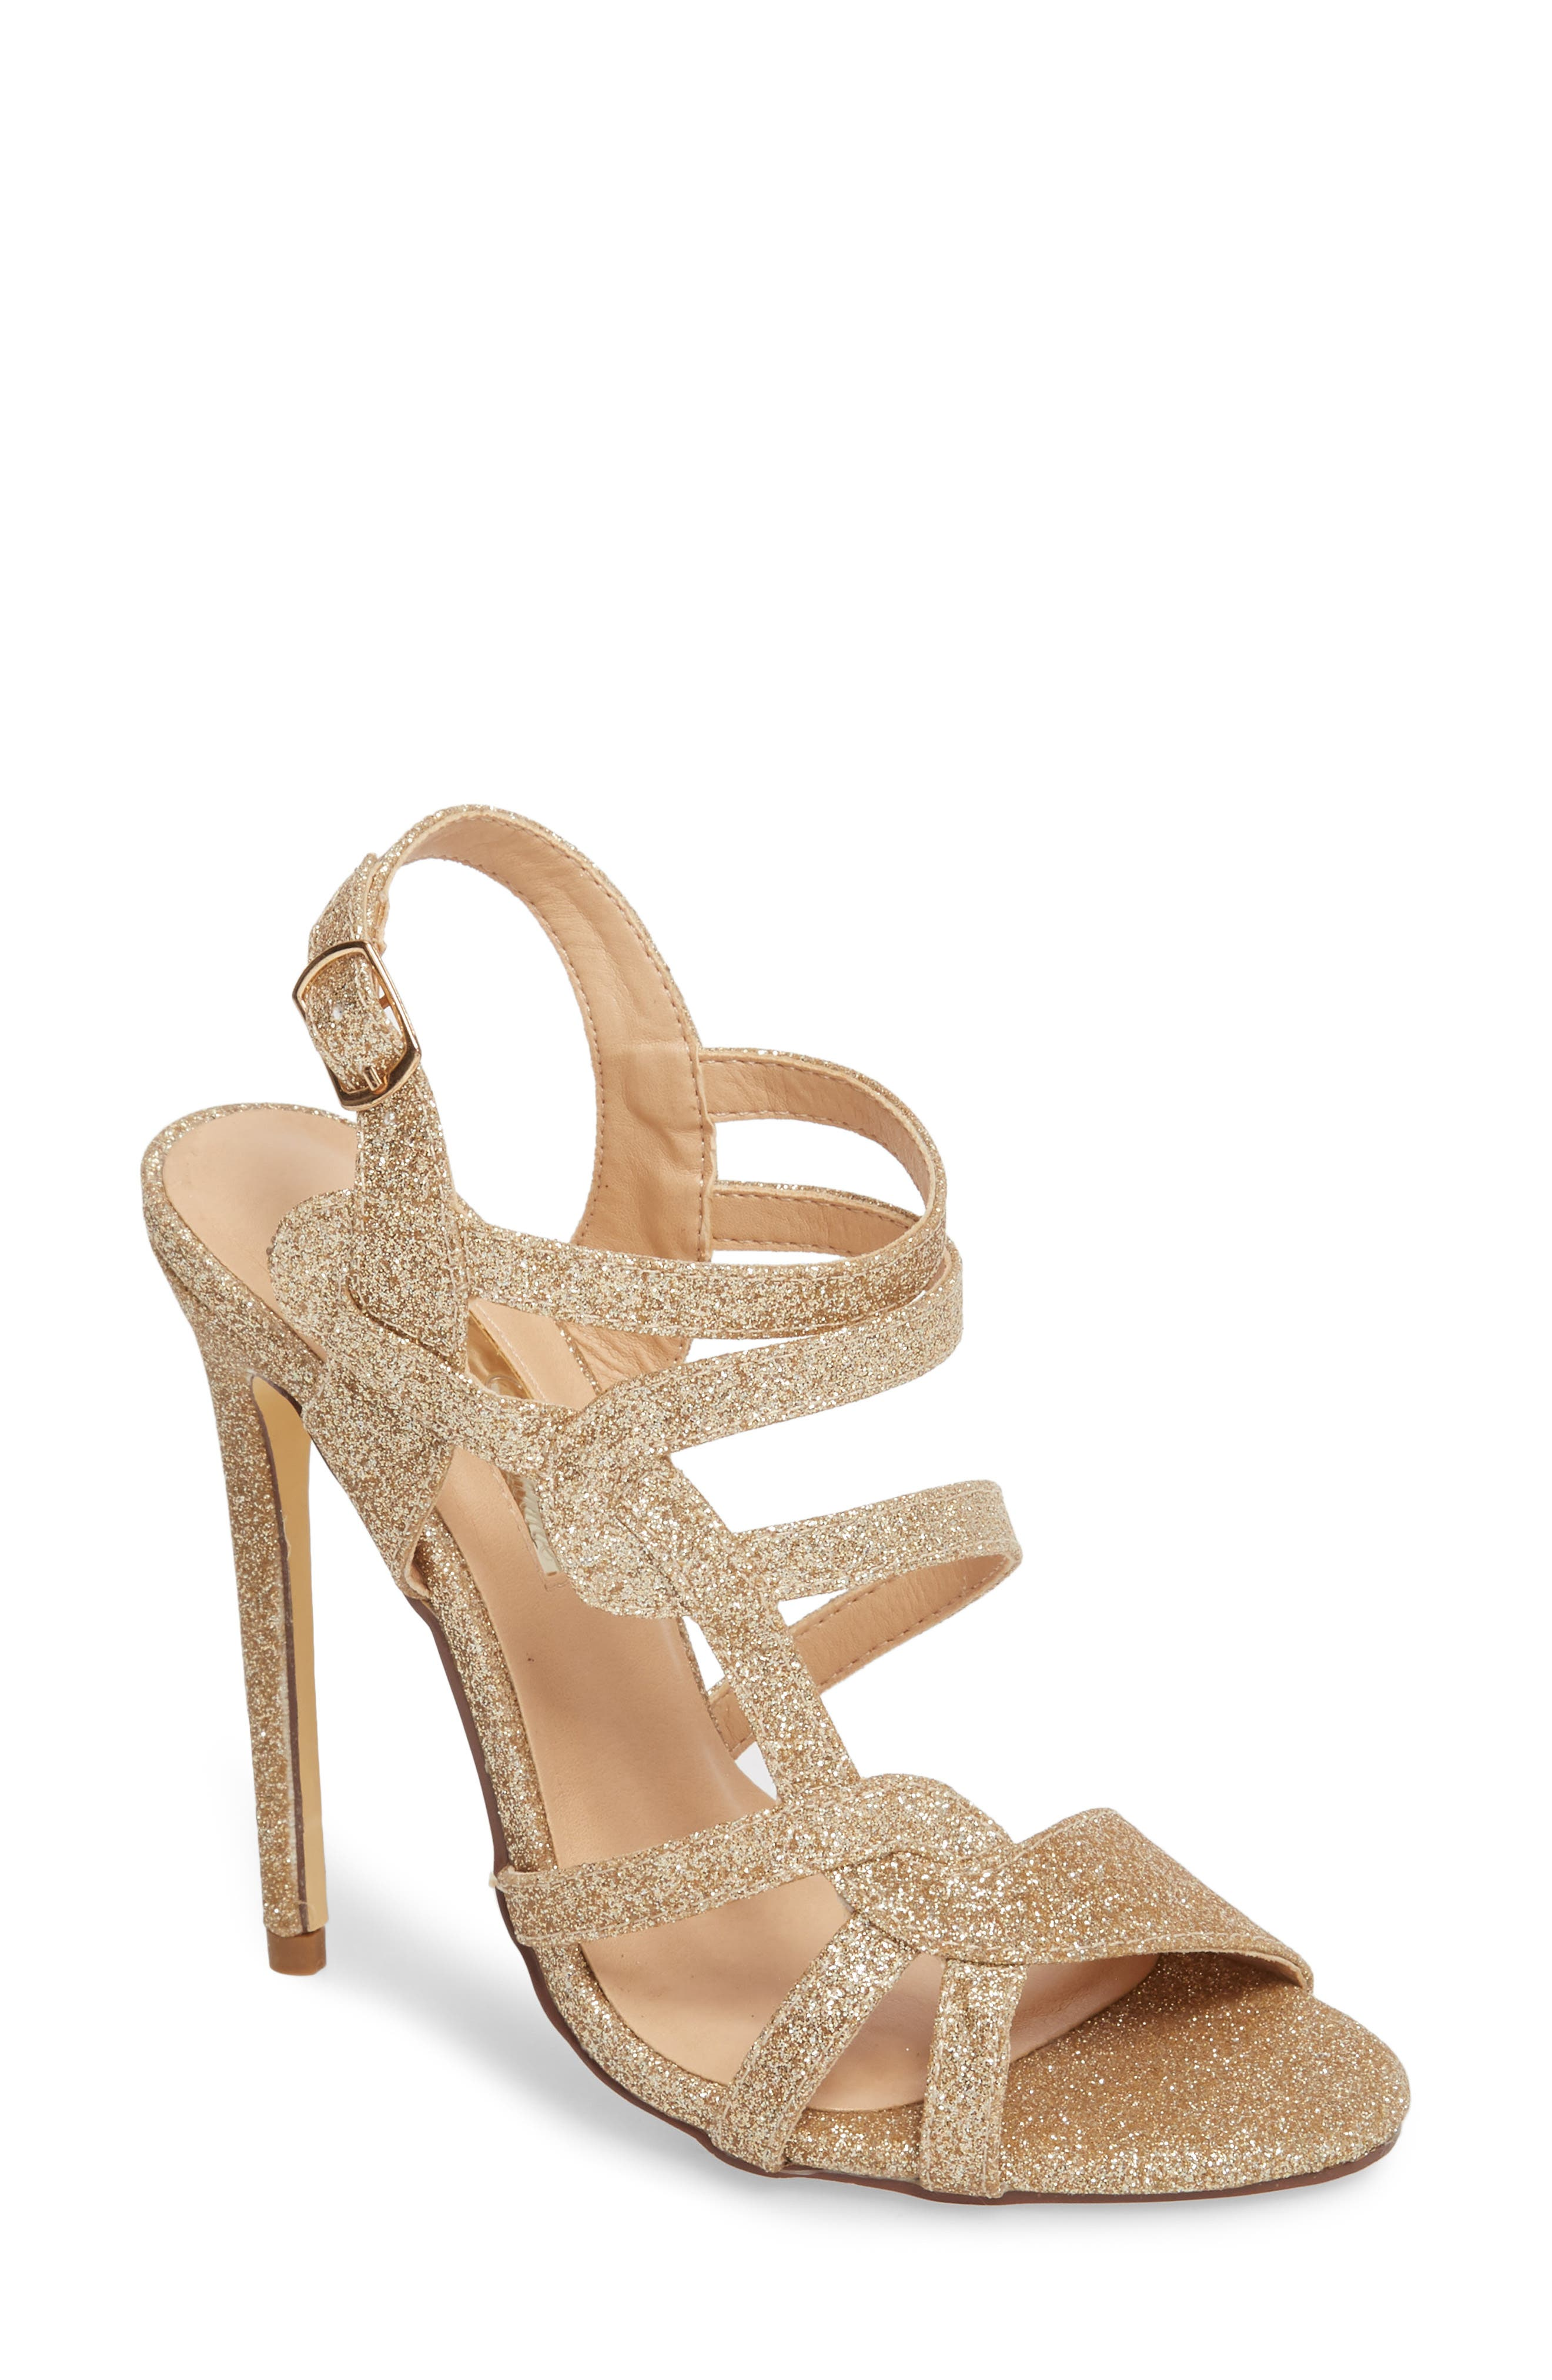 LAUREN LORRAINE, Gidget Sandal, Main thumbnail 1, color, NUDE FABRIC